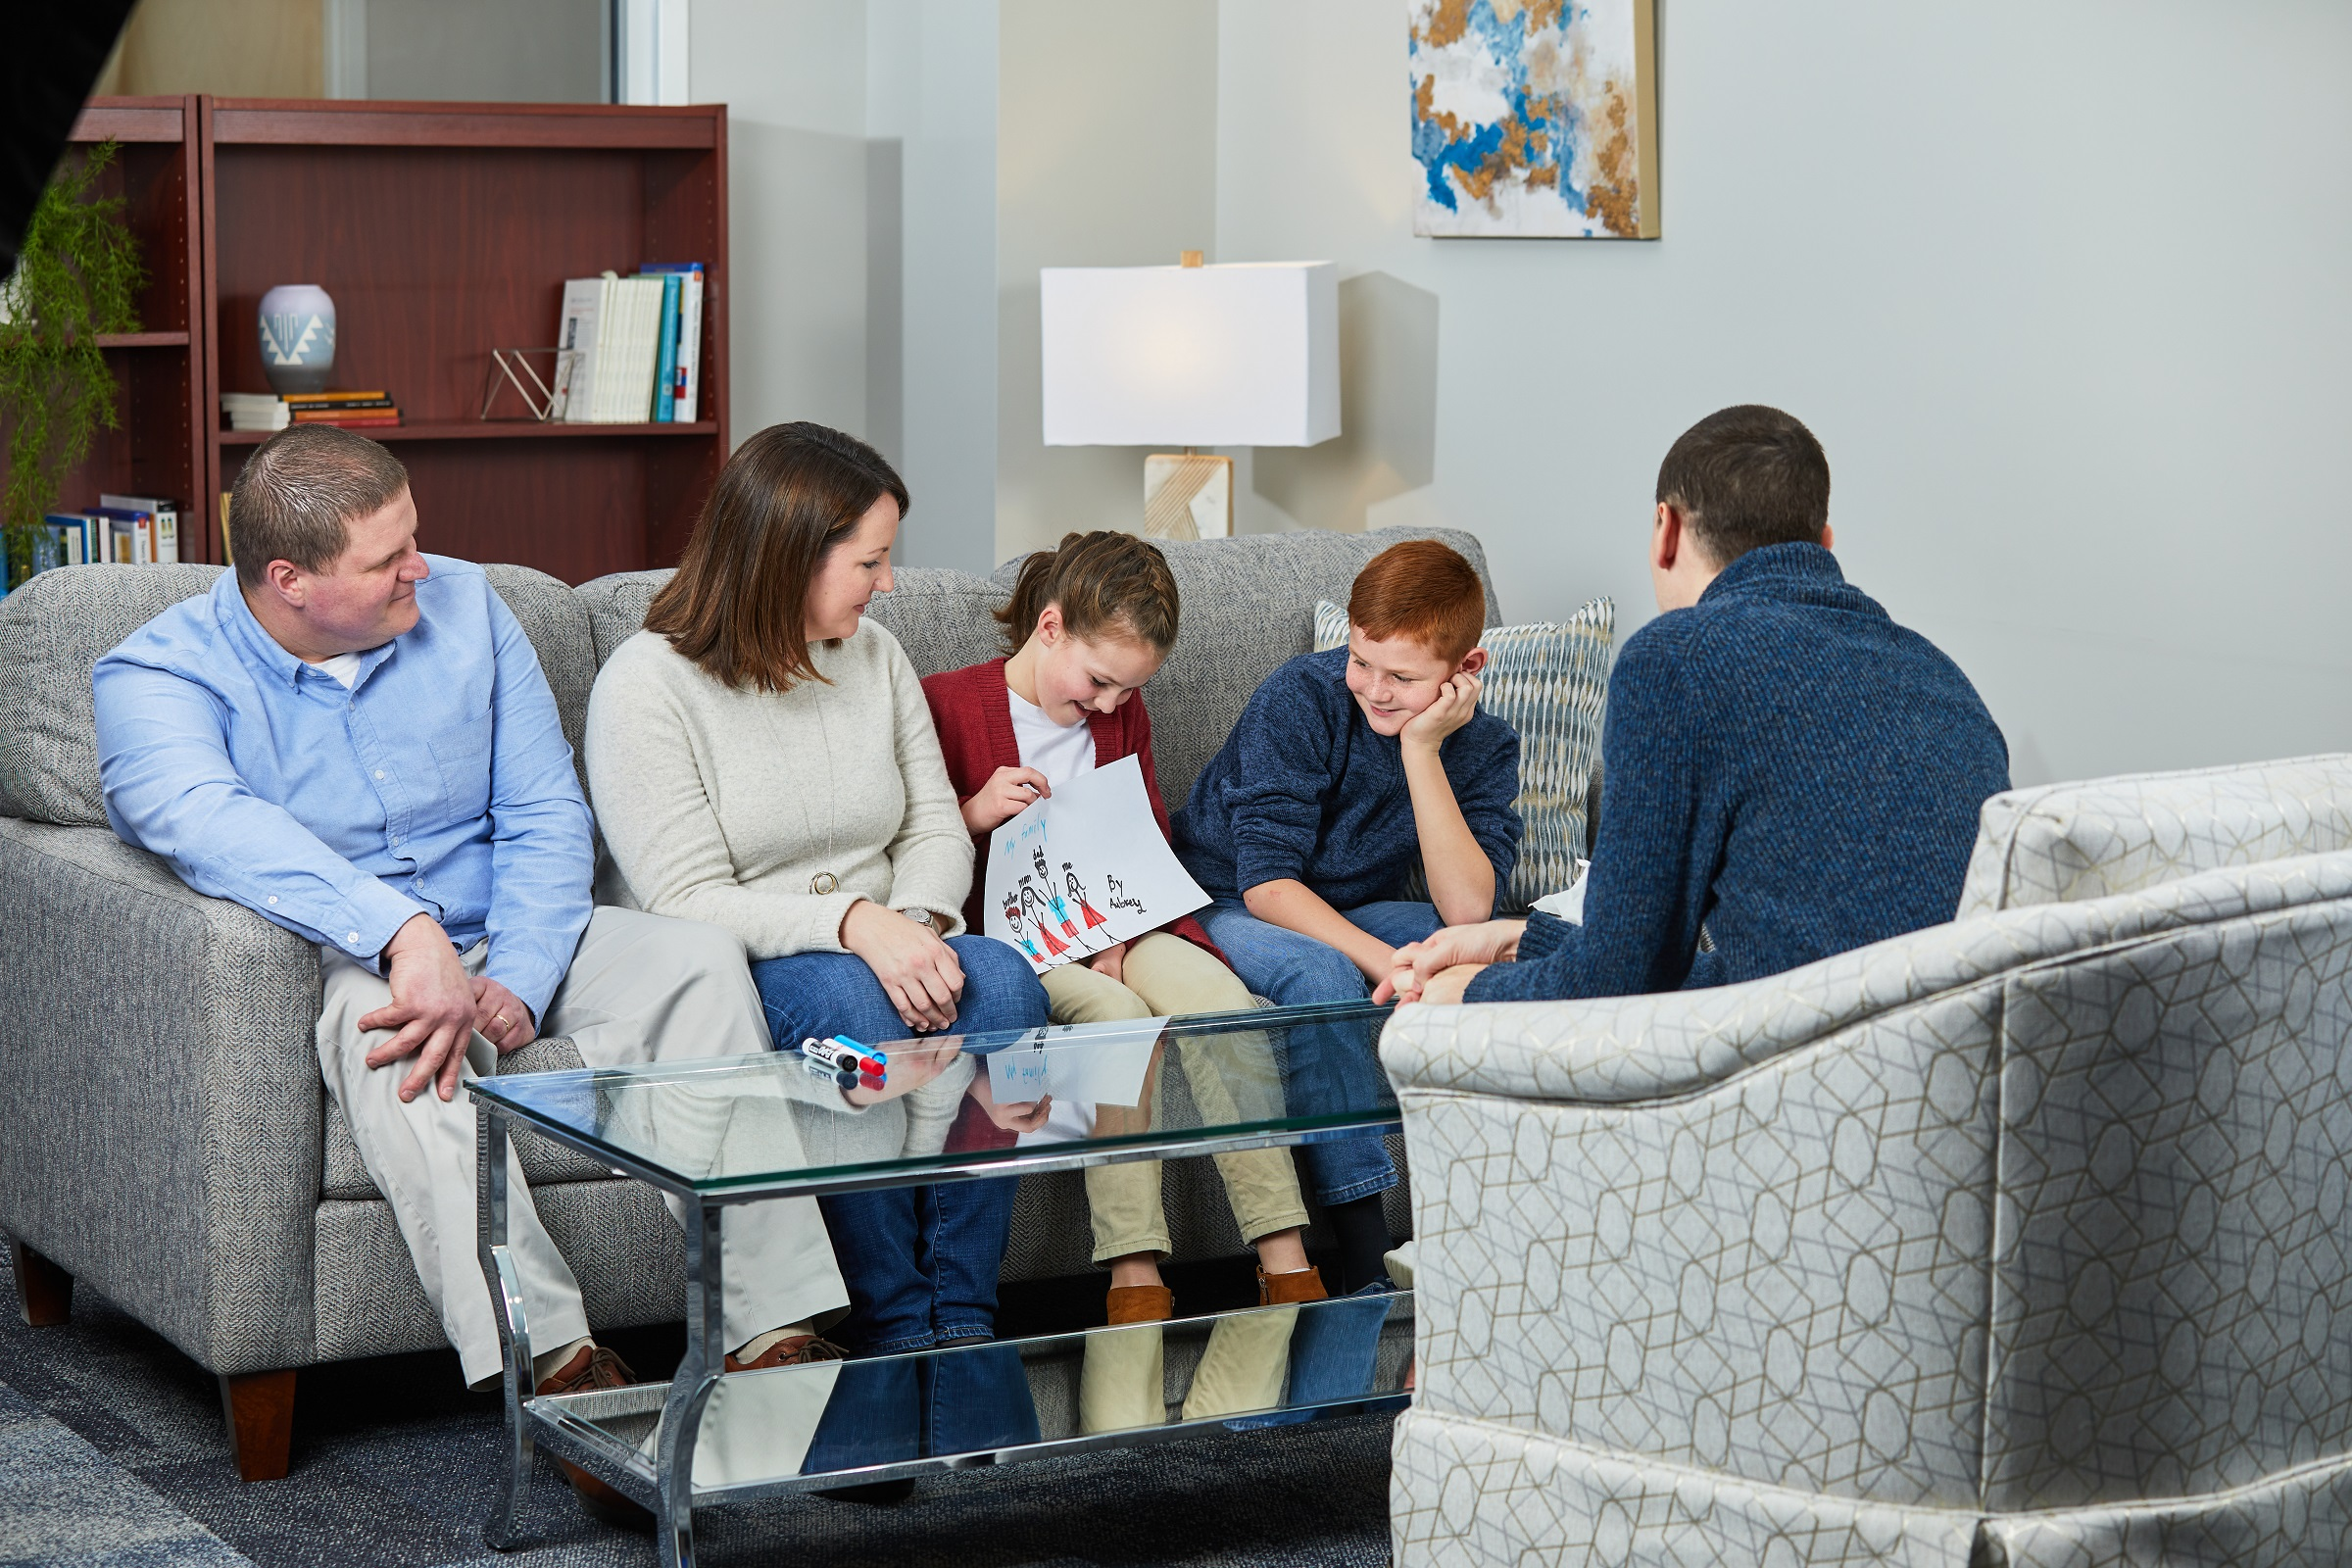 Caucasian family of four in a counseling setting with a male counselor. Son and daughter are drawing family pictures.